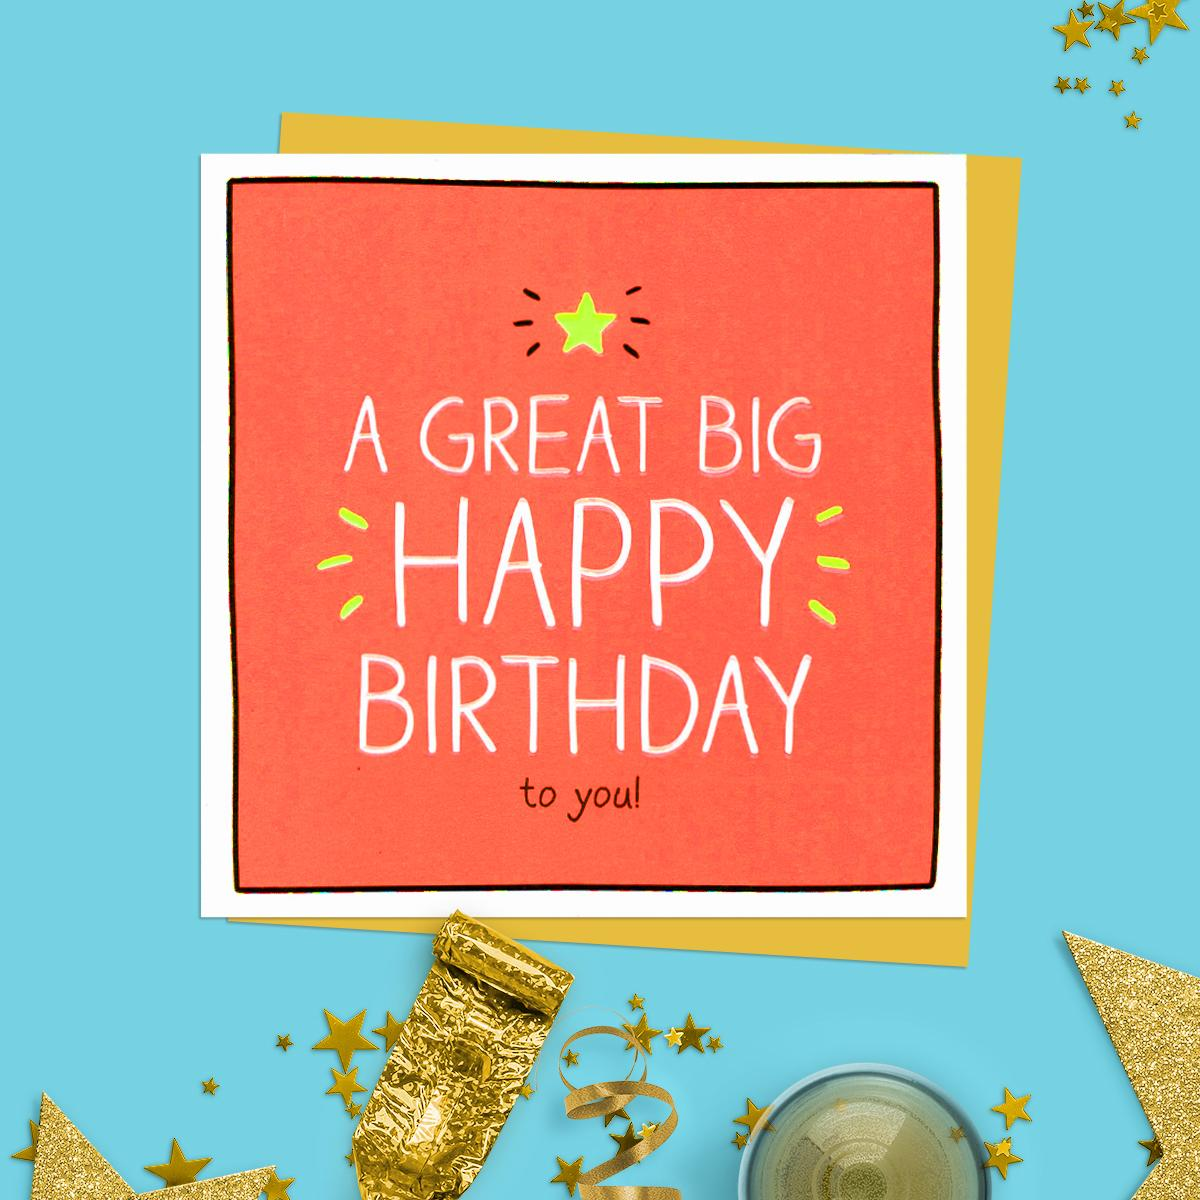 Great Big Happy Birthday Birthday Card Sitting On A Wooden Shelf